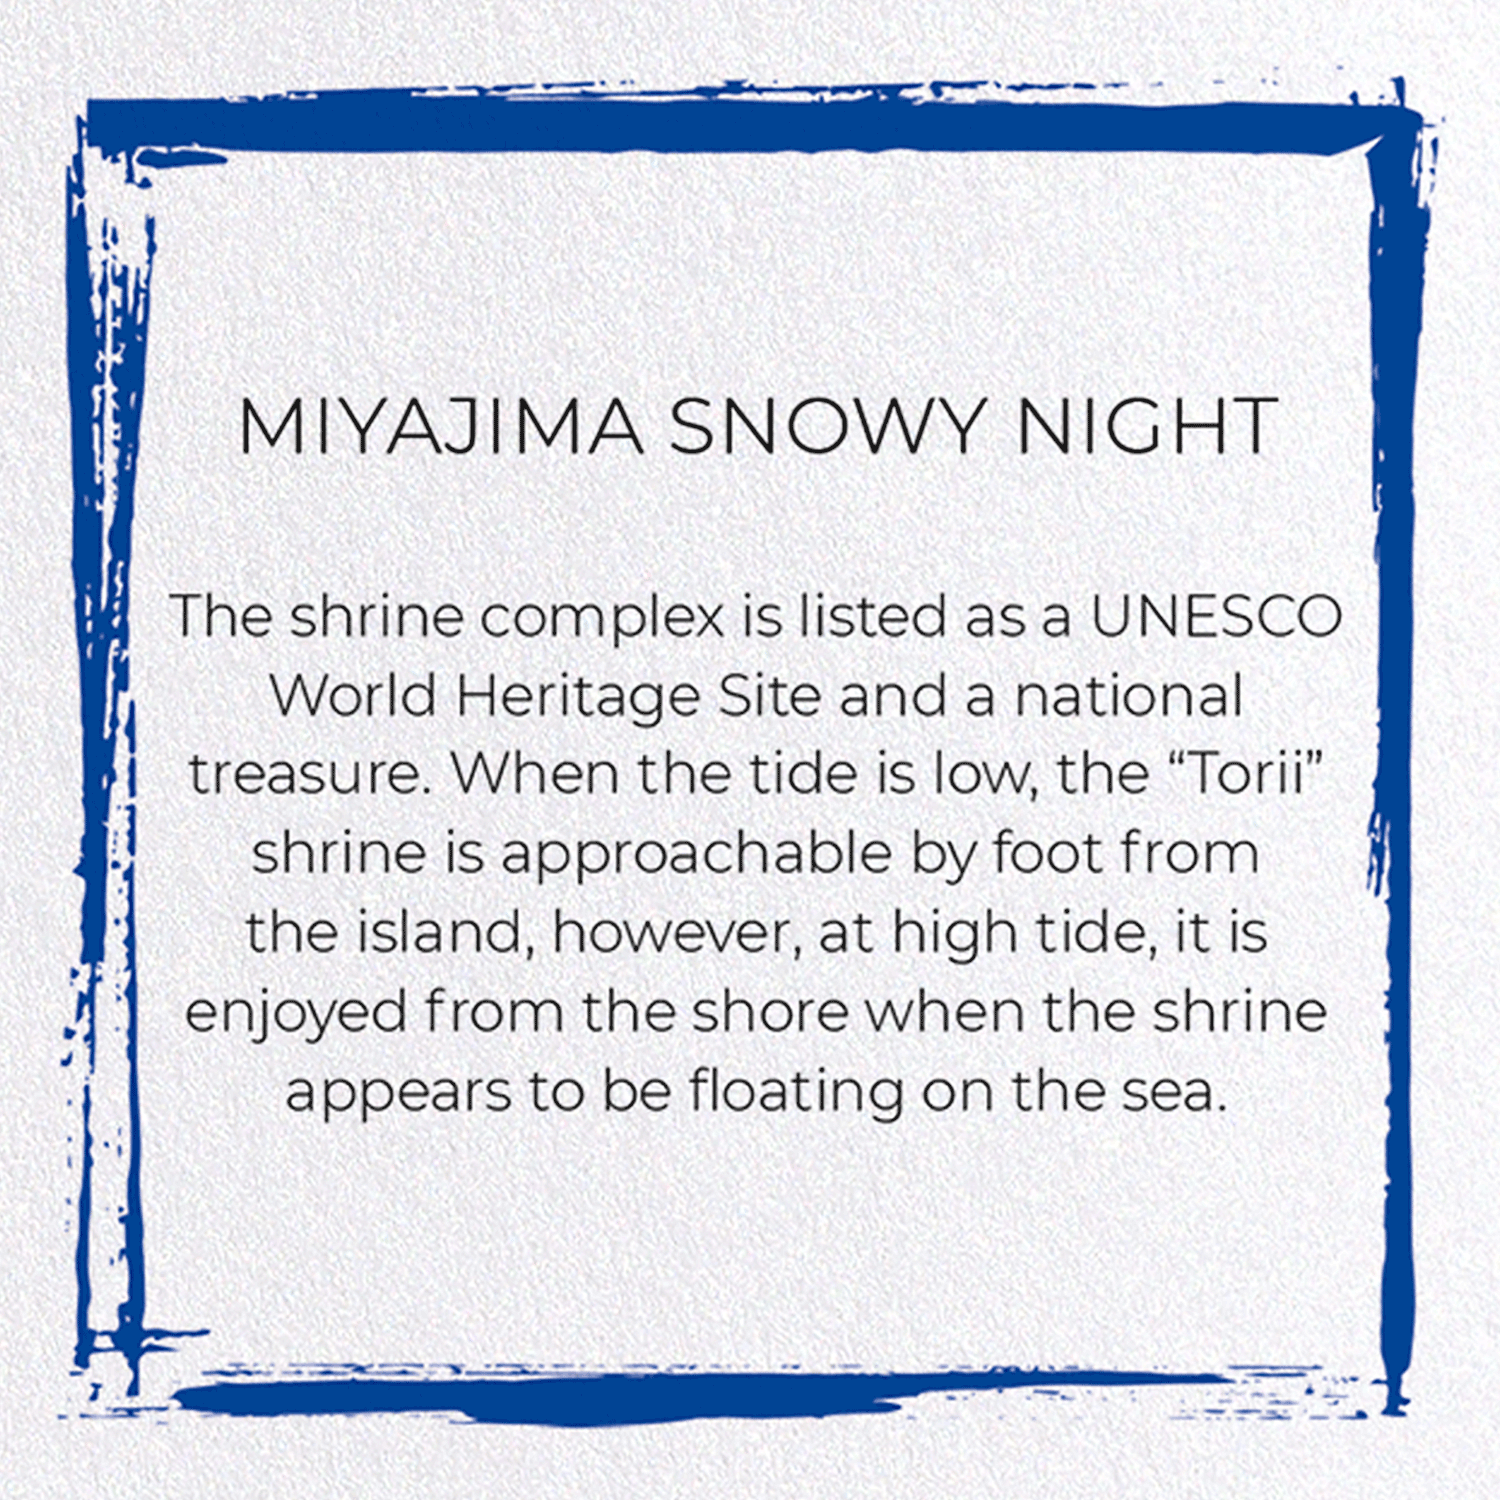 MIYAJIMA SNOWY NIGHT: 8xCards